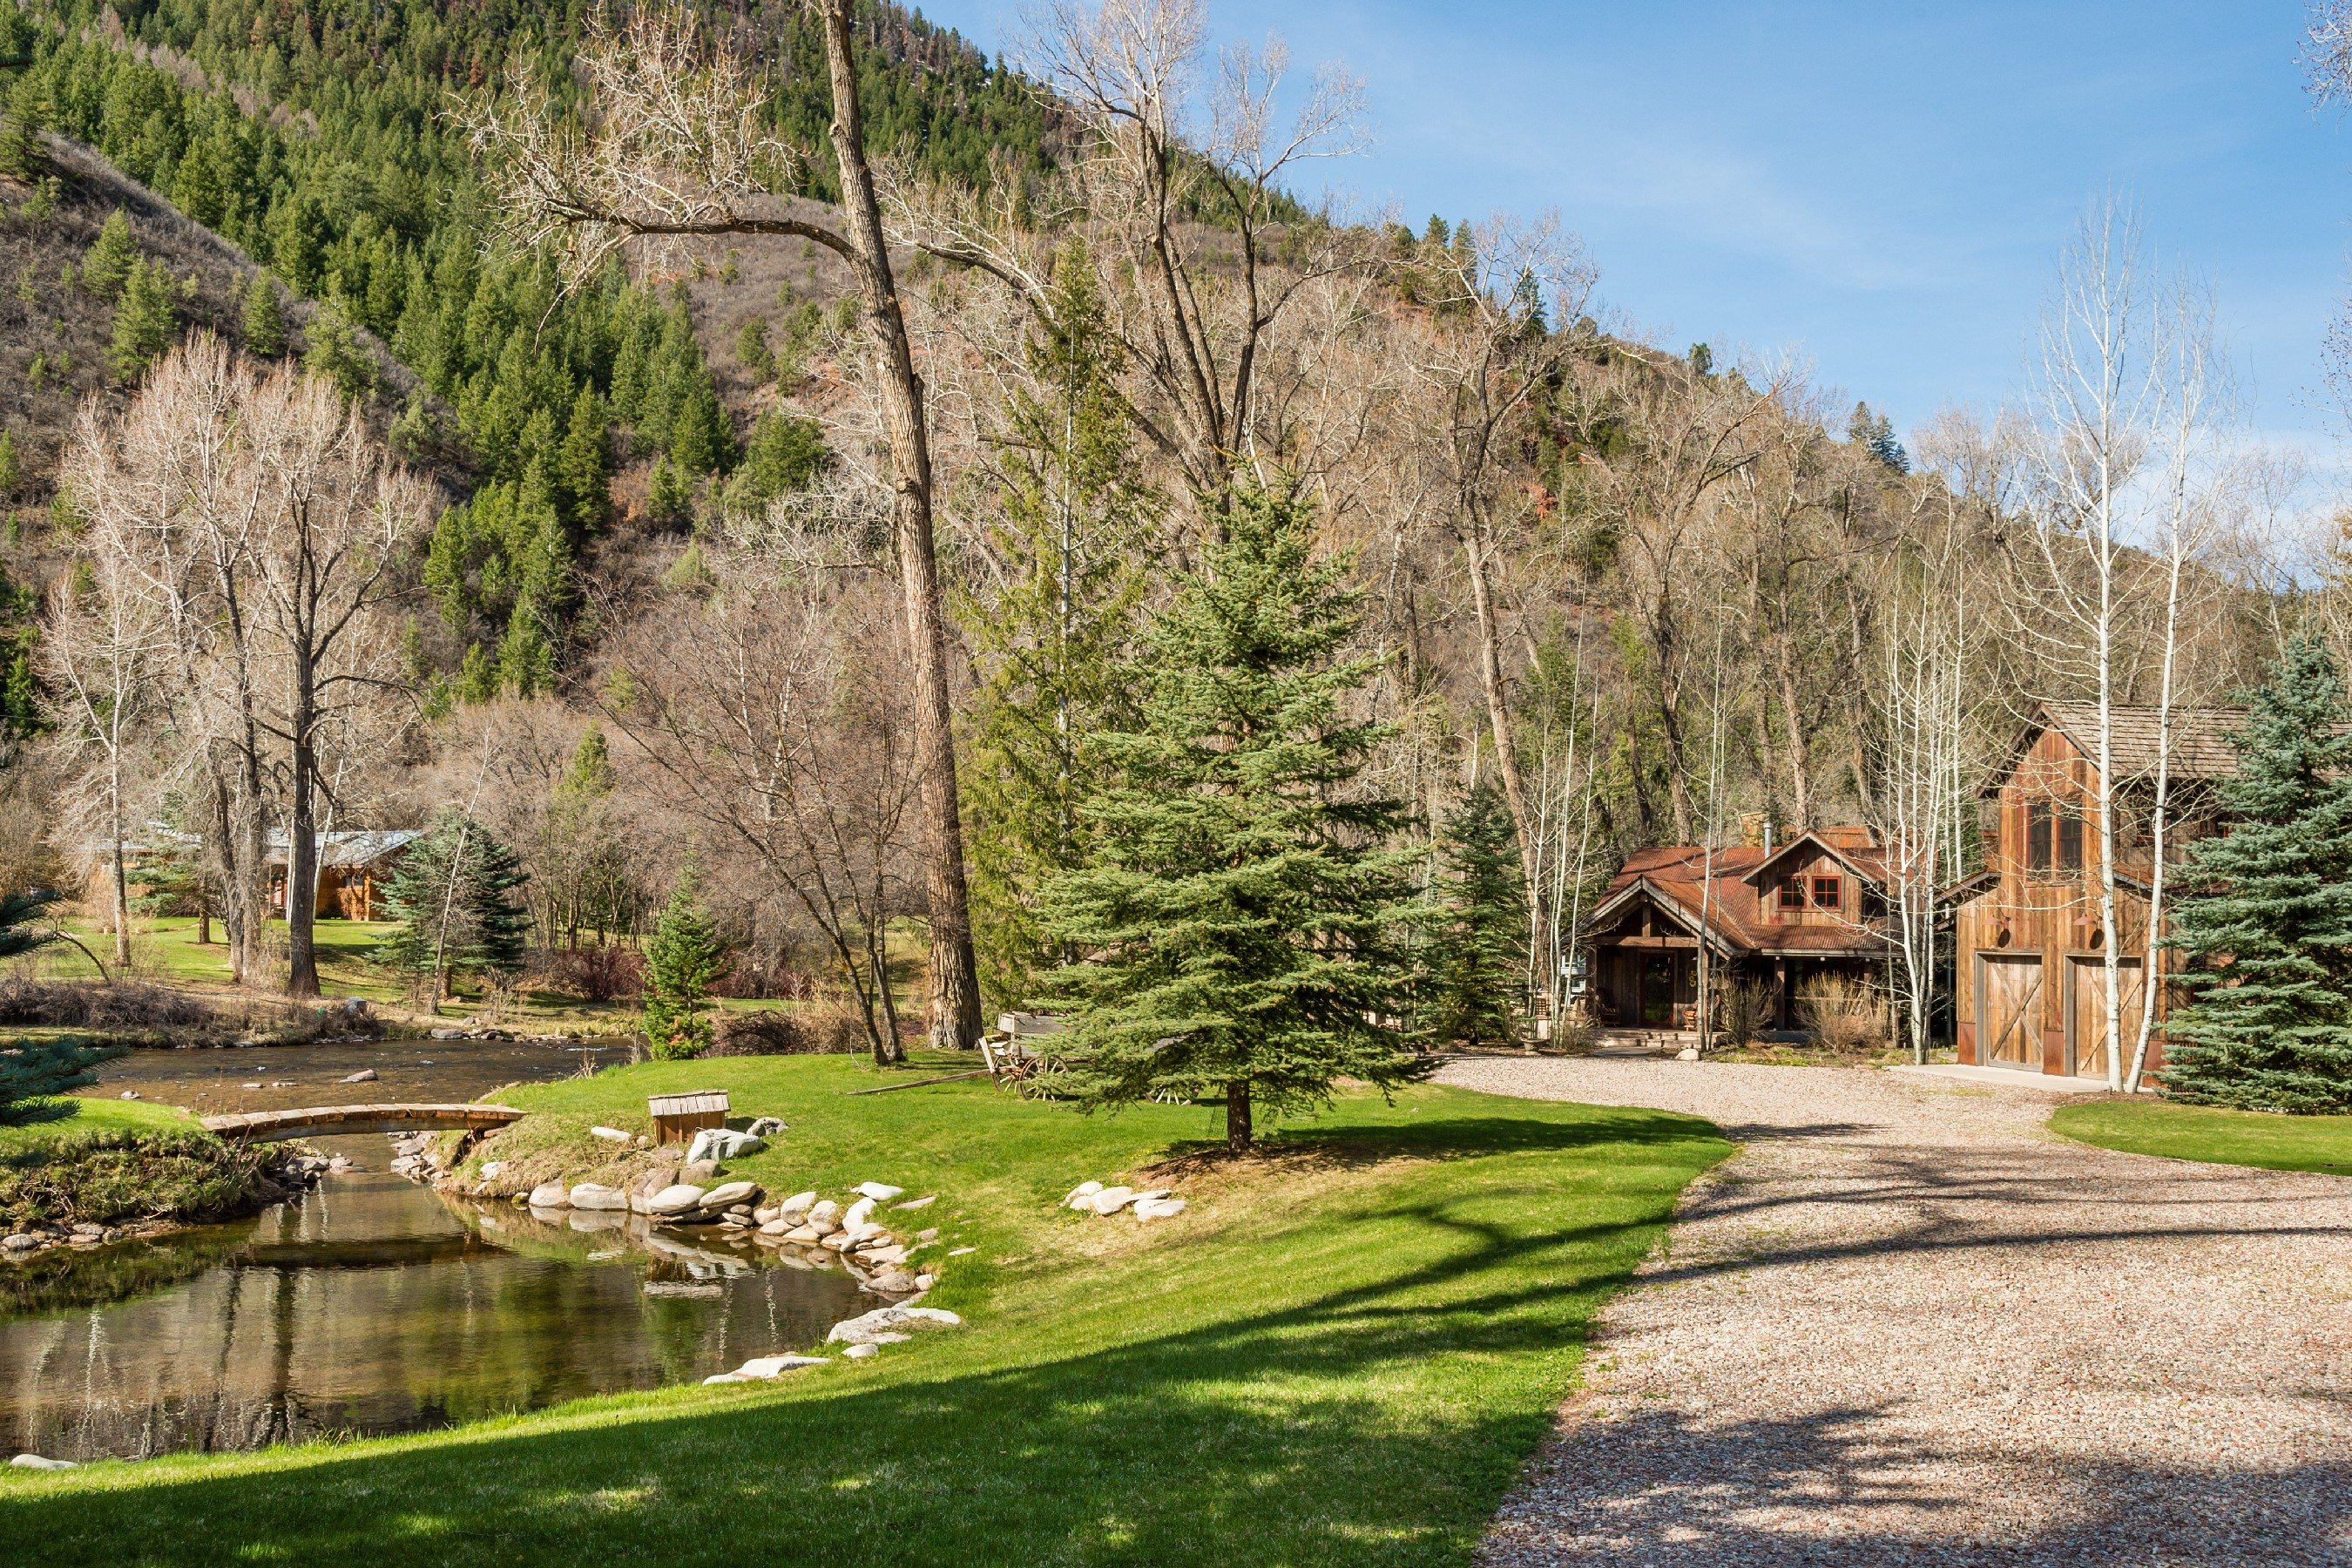 Single Family Home for Sale at Riverfront Property on the Frying Pan 23 Peachblow Road Basalt, Colorado, 81621 United States